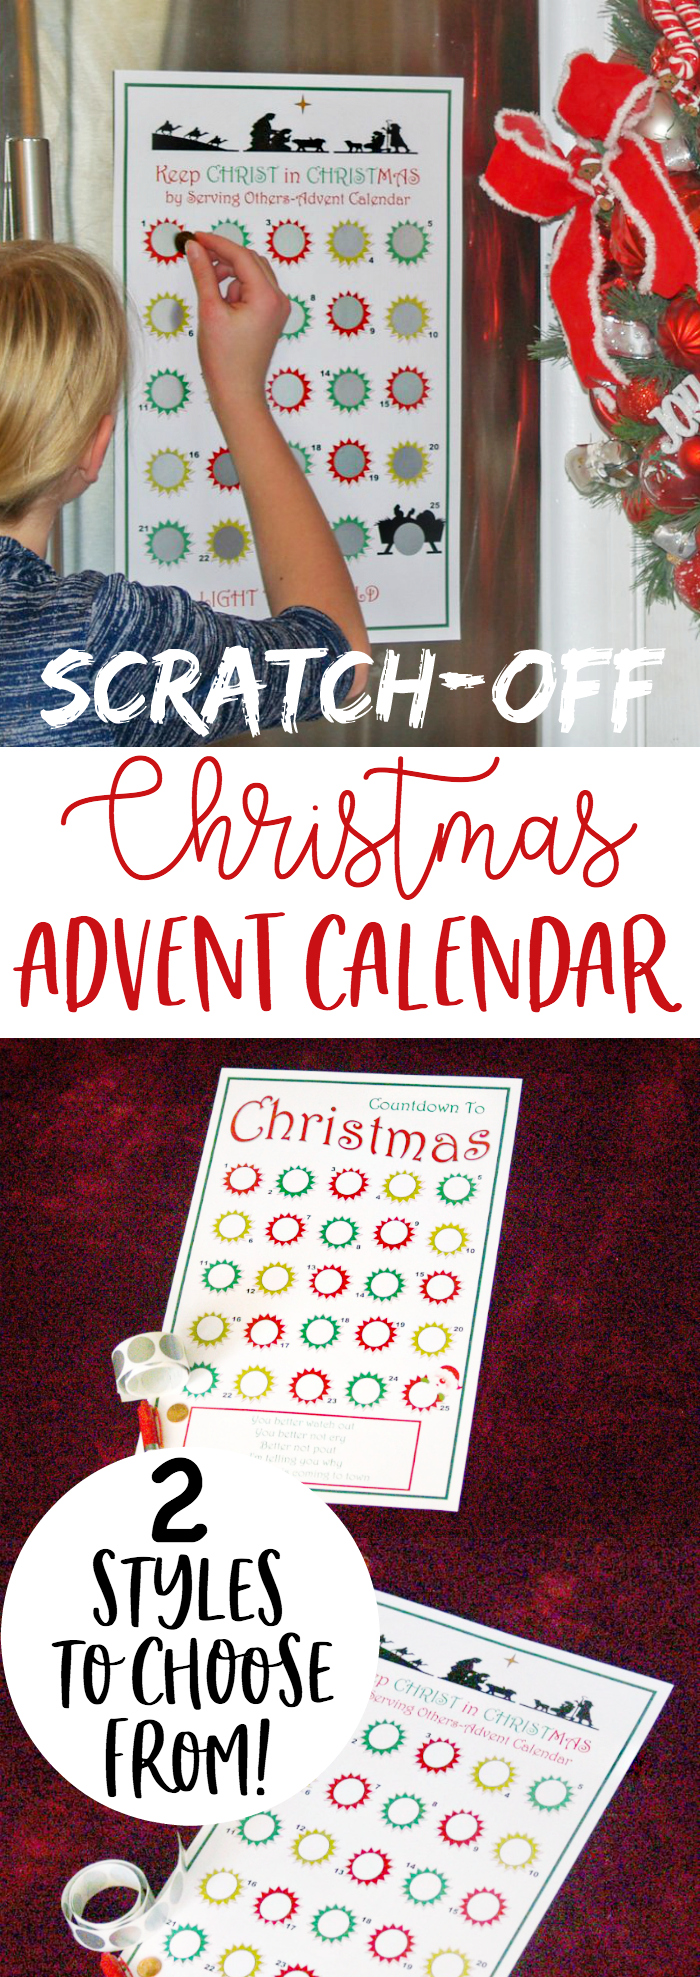 BRILLZ! Scratch-Off Christmas Advent Calendar... use code LOLLYJANE for BOGO! Perfect gift for friends and neighbors, or for yourself to stop the kids from asking when Santa is coming every day! ;) bit.ly/scratchxmascalendar #adventcalendar